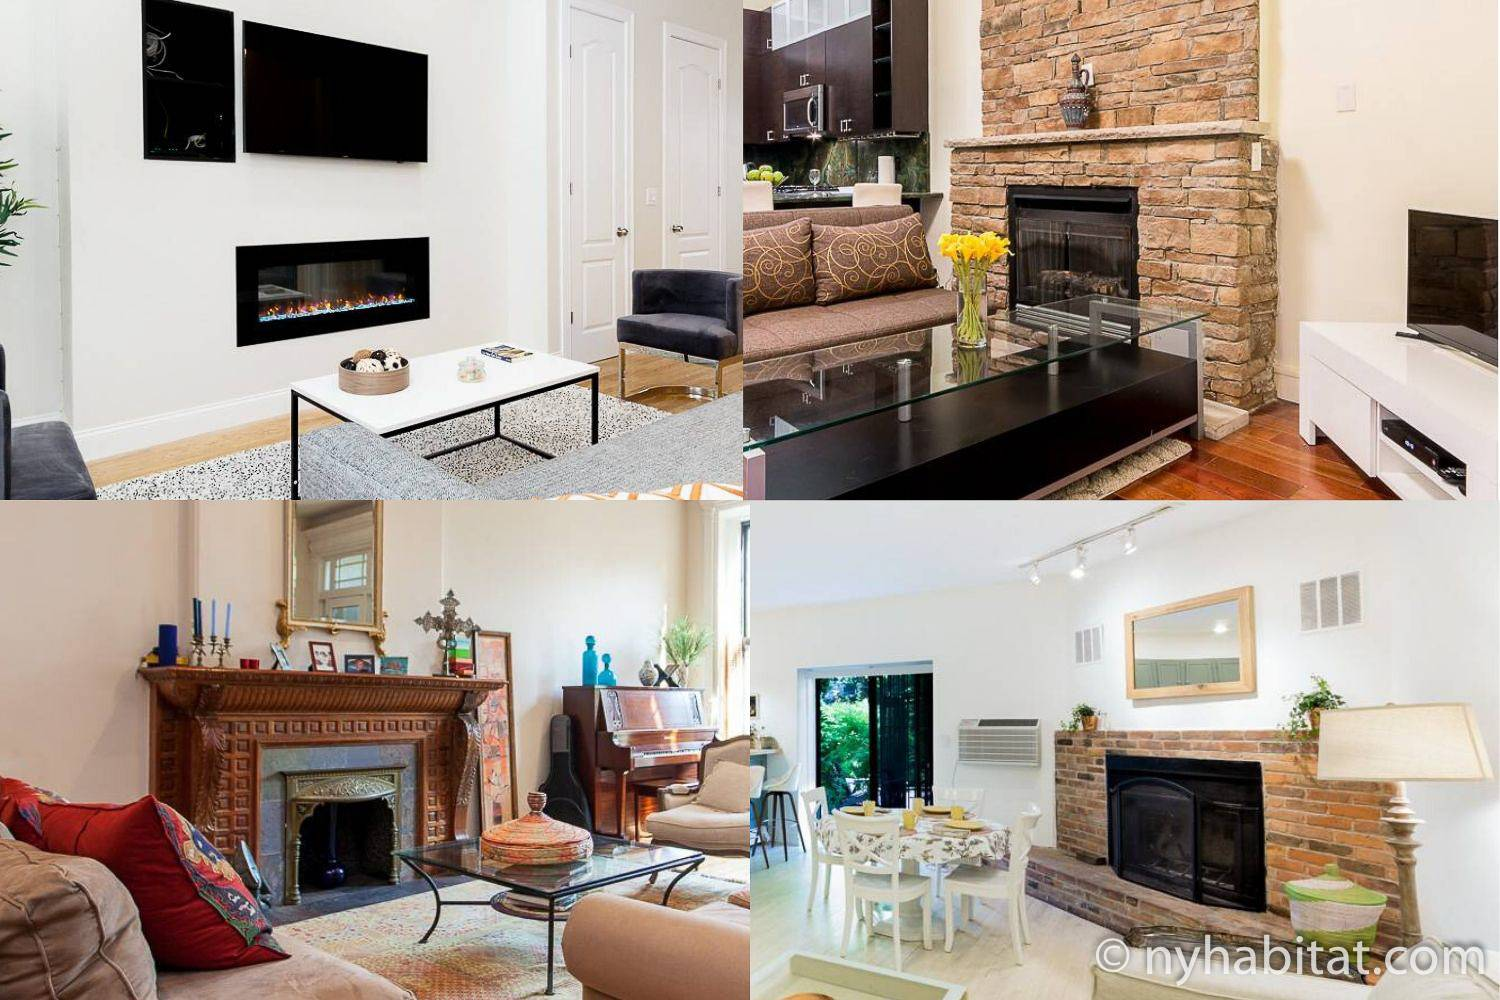 Collage of four apartments with fireplaces in the living room